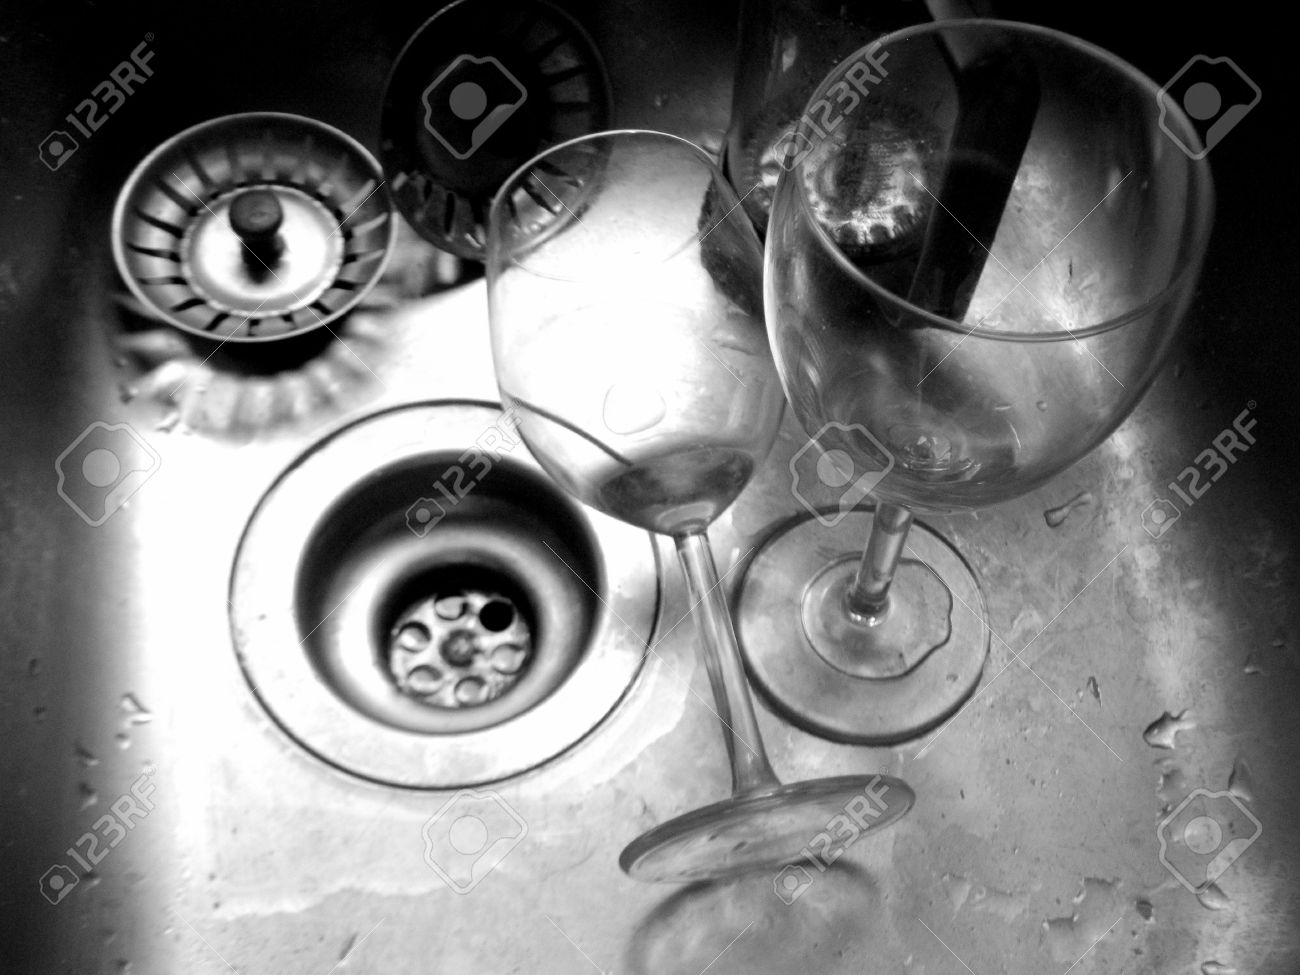 Mess In The Kitchen Sink And Wine Glasses Stock Photo, Picture And ...